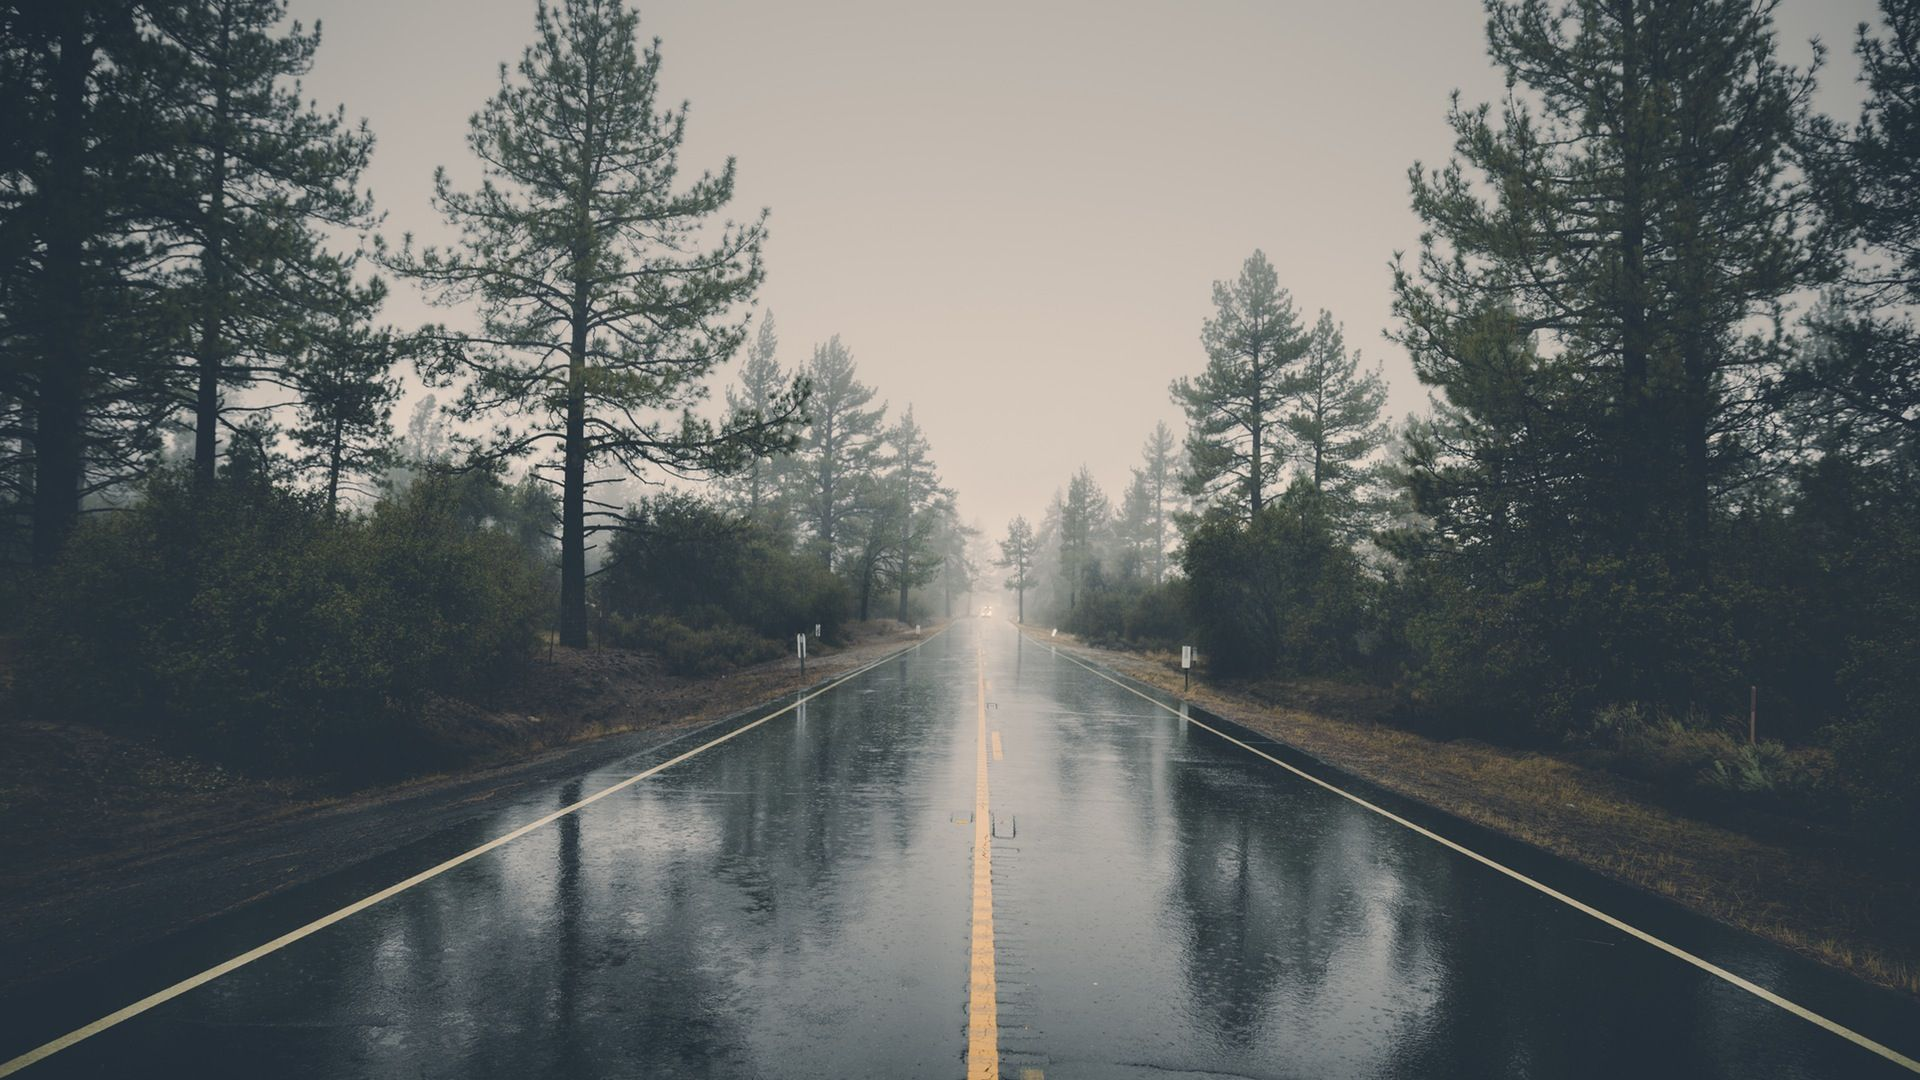 Looking Down The Rainy Road 1920x1080 Rain Wallpapers Landscape Laptop Wallpaper